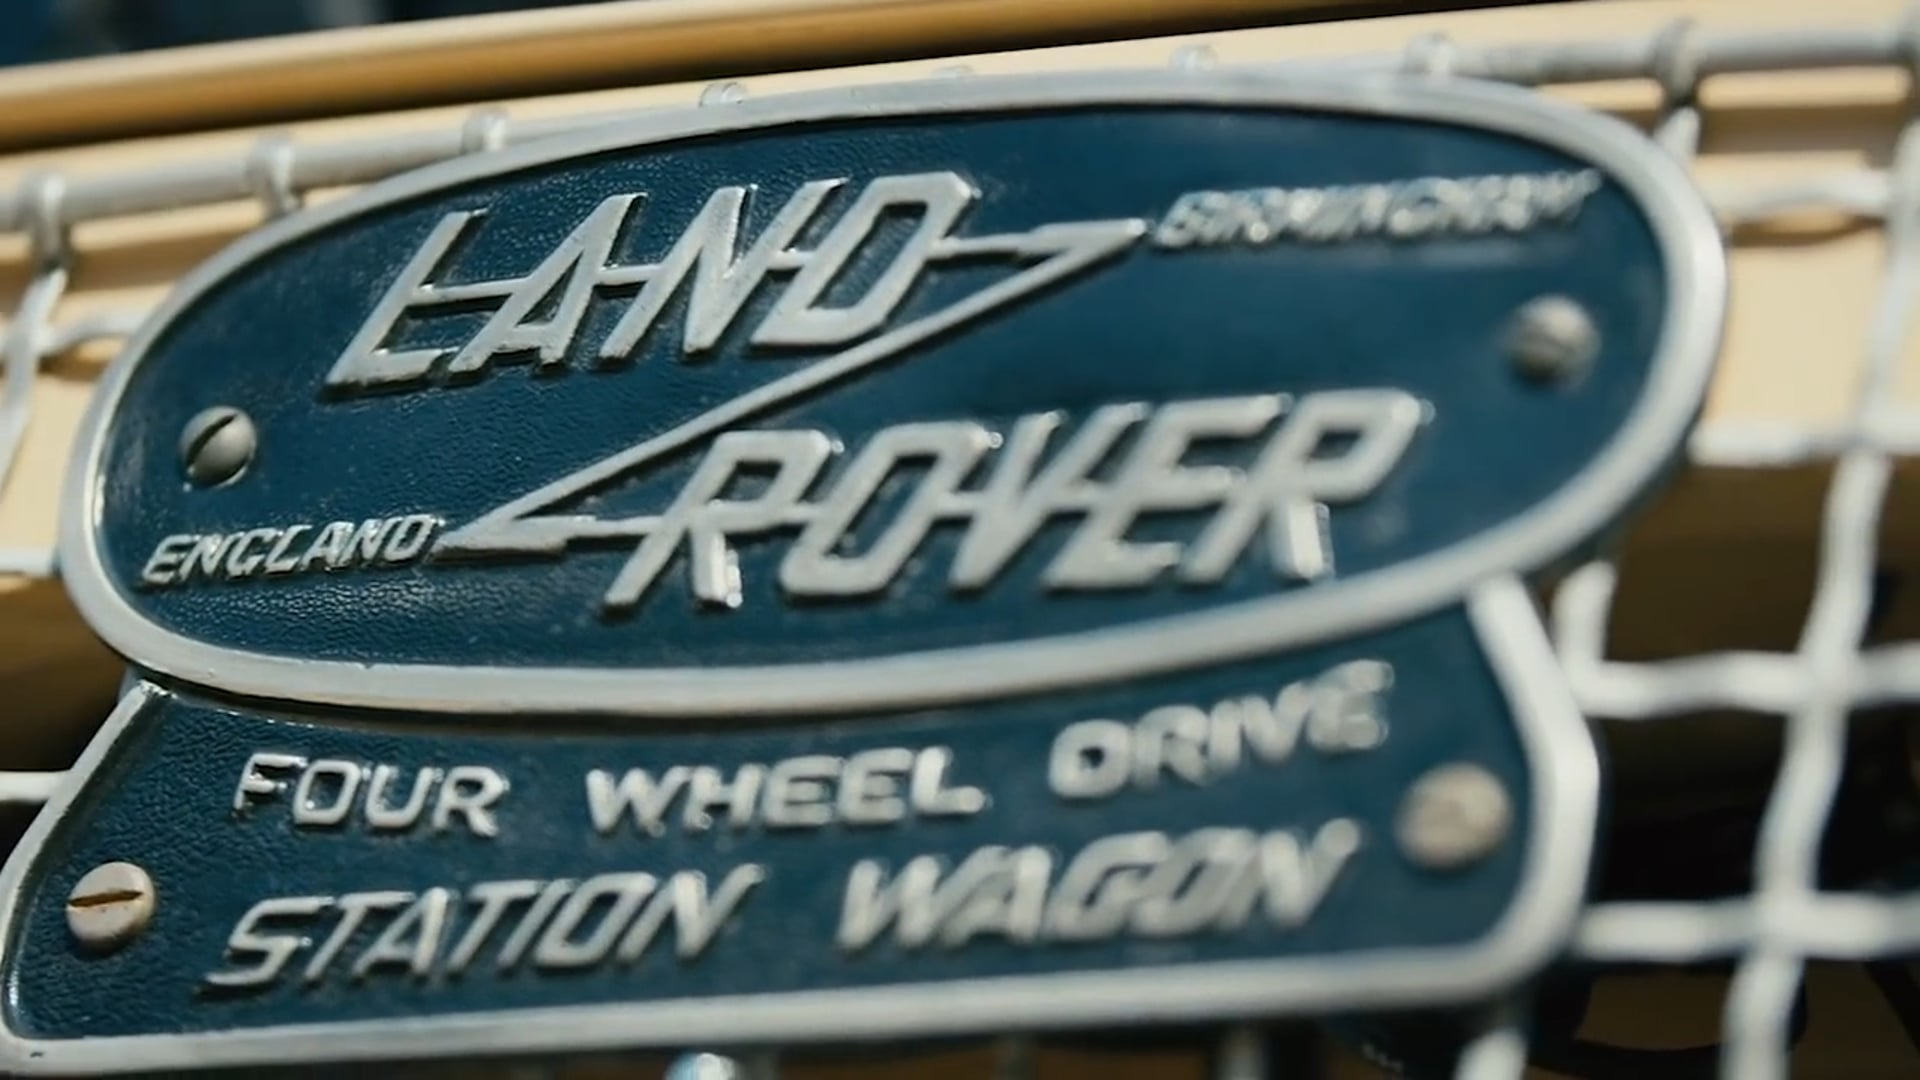 The Grizzly Torque - Celebrating 70 Years of Land Rover